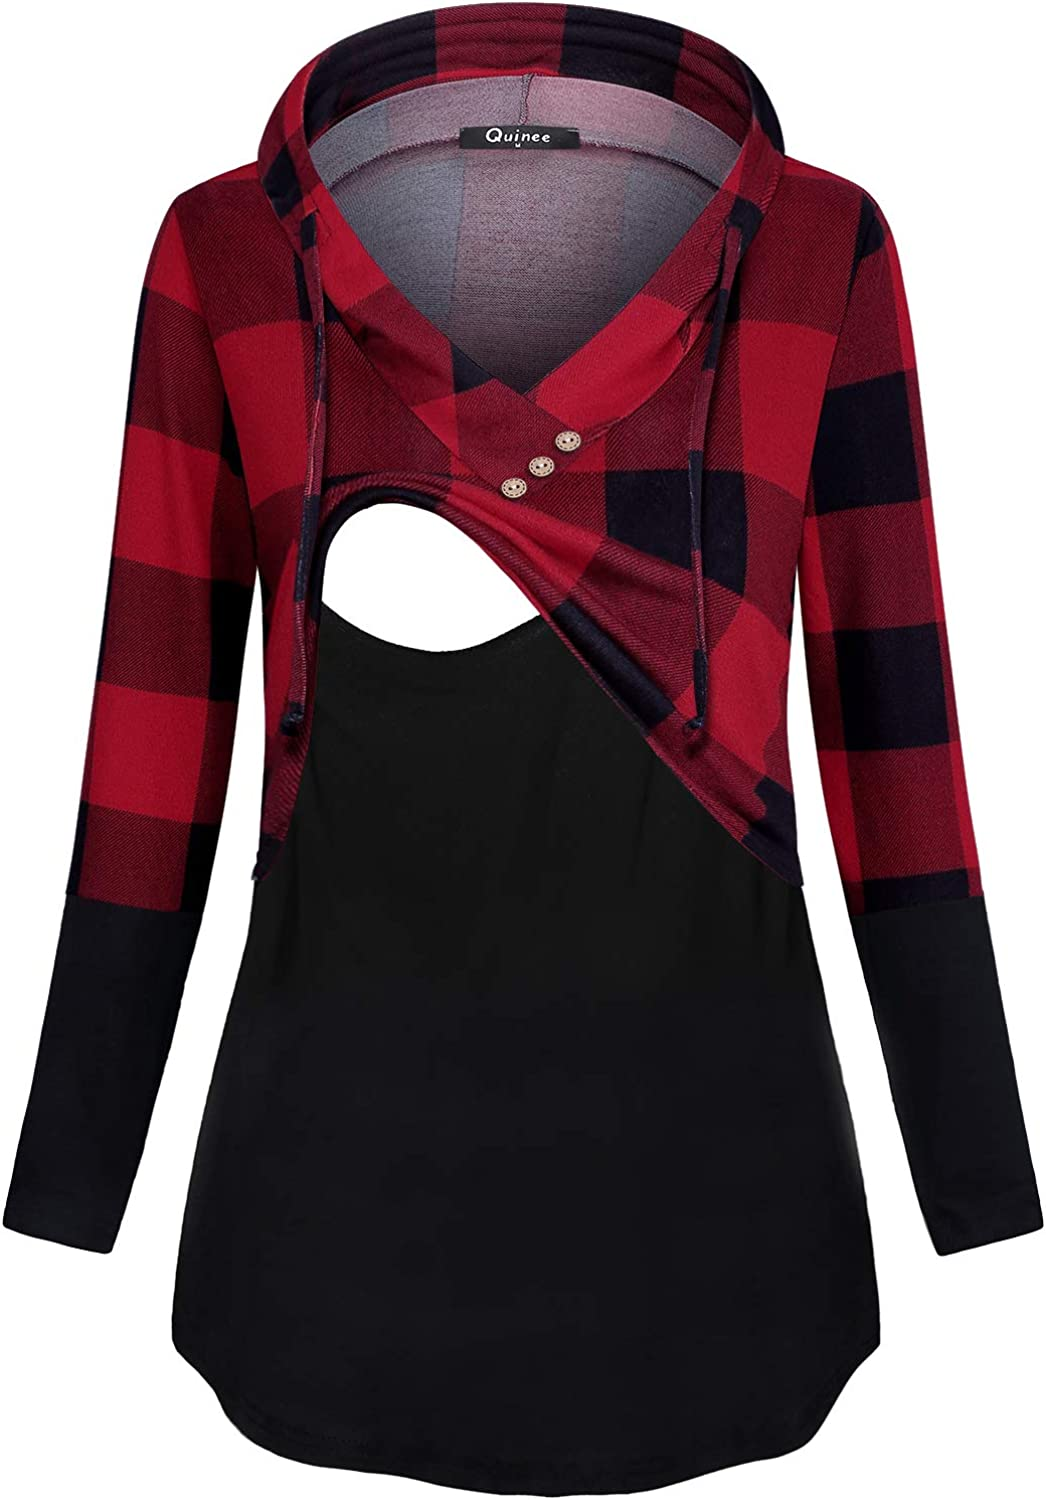 Quinee Women's Long Sleeve Plaid Hoo Attention brand Nursing Pullover Colorblock 2021 spring and summer new